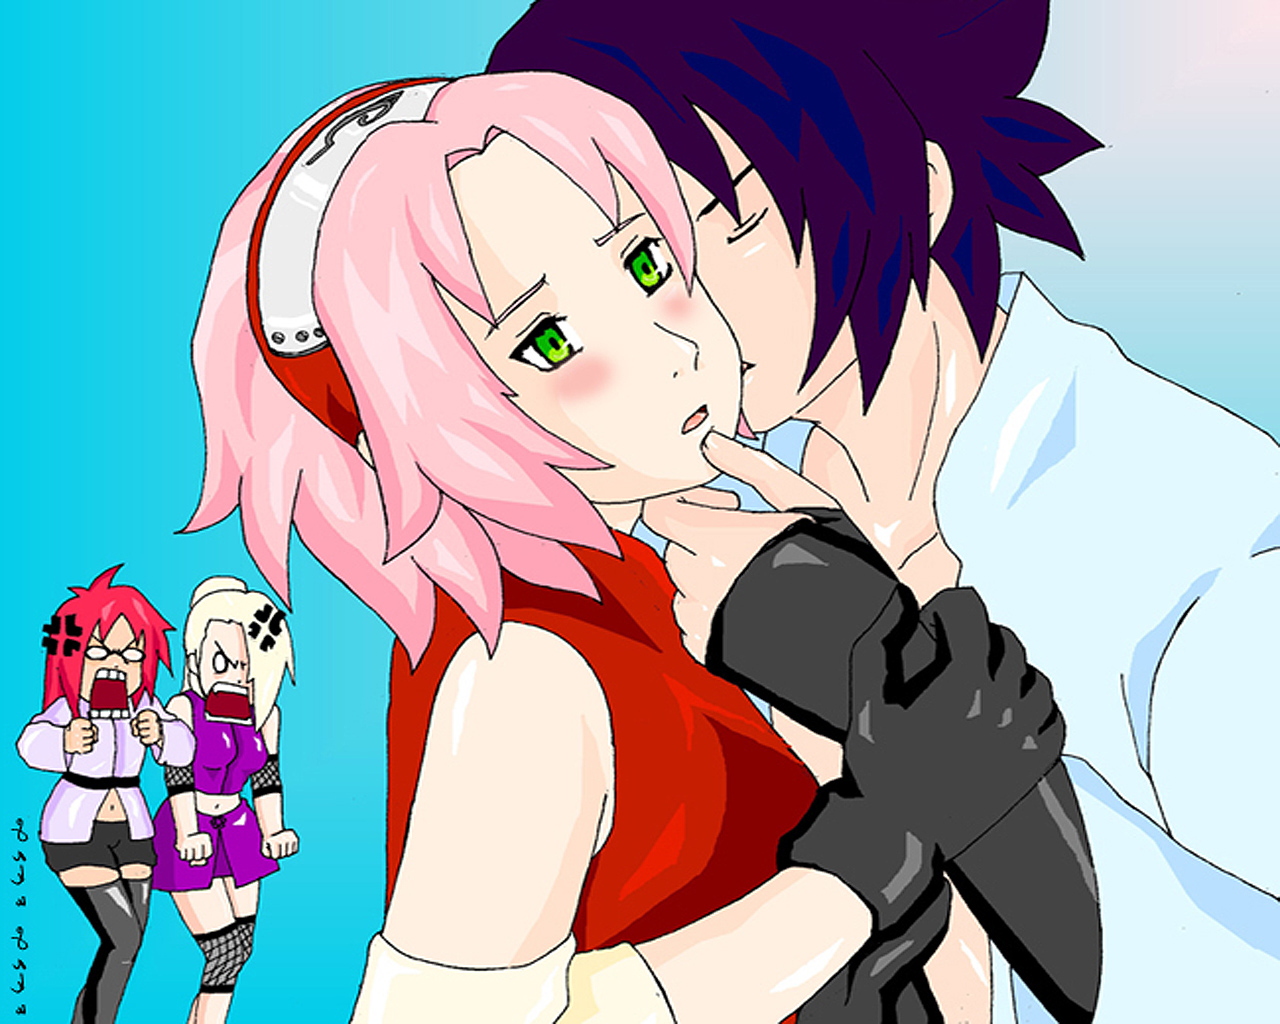 Kiss Sakura Naruto Shippuden Wallpapers on this Naruto ShippudenNaruto Shippuden Naruto And Sakura Kiss